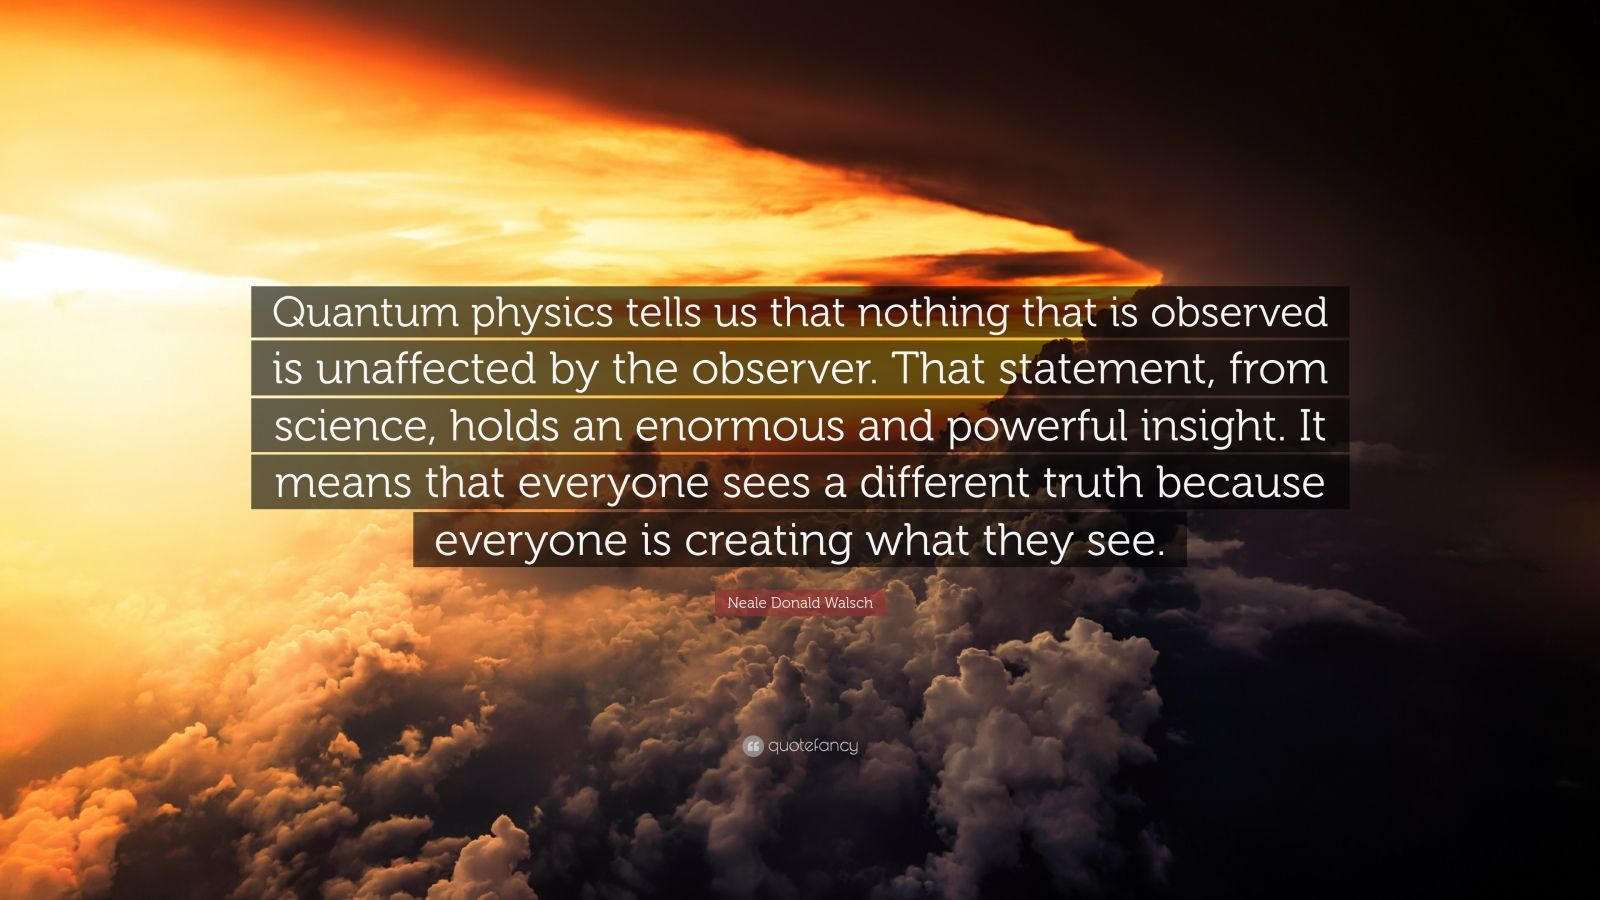 "Neale Donald Walsch Quote: ""Quantum physics tells us that nothing that is observed is unaffected by the observer. That statement, from science, holds an enormous and powerful insight. It means that everyone sees a different truth because everyone is creating what they see."""